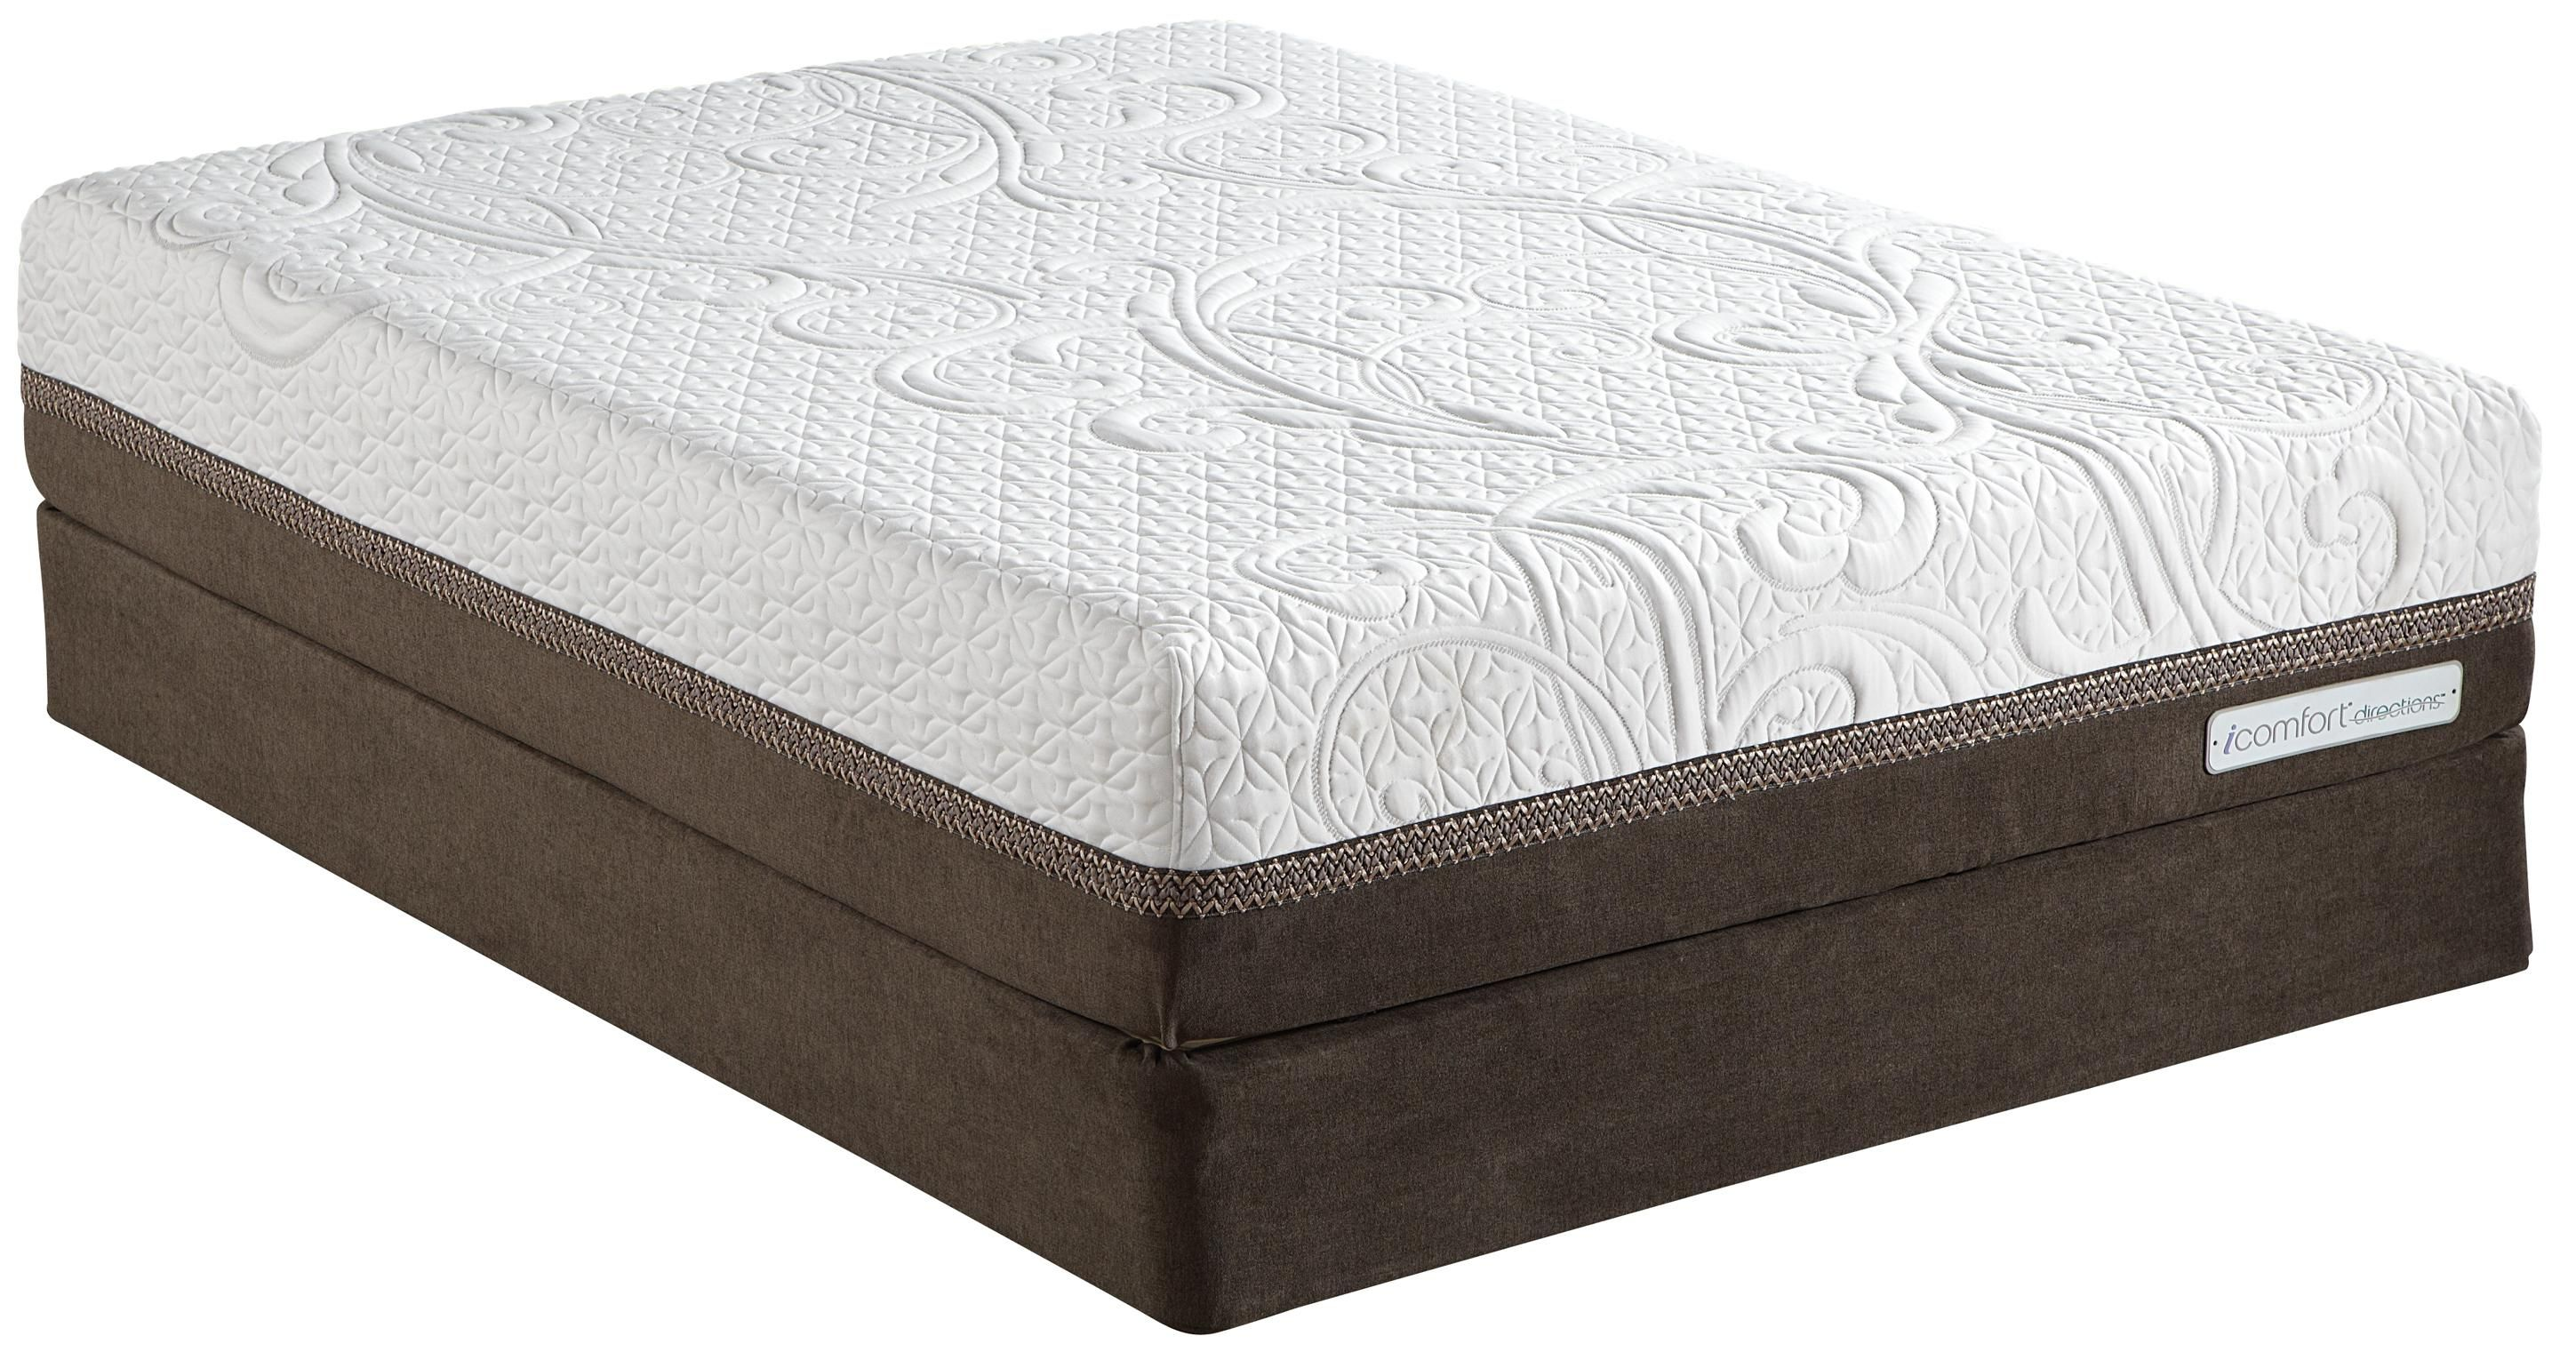 Icomfort Directions Acumen Queen Memory Foam Mattress By Serta Mattress Firm Memory Foam Mattress Serta Mattress